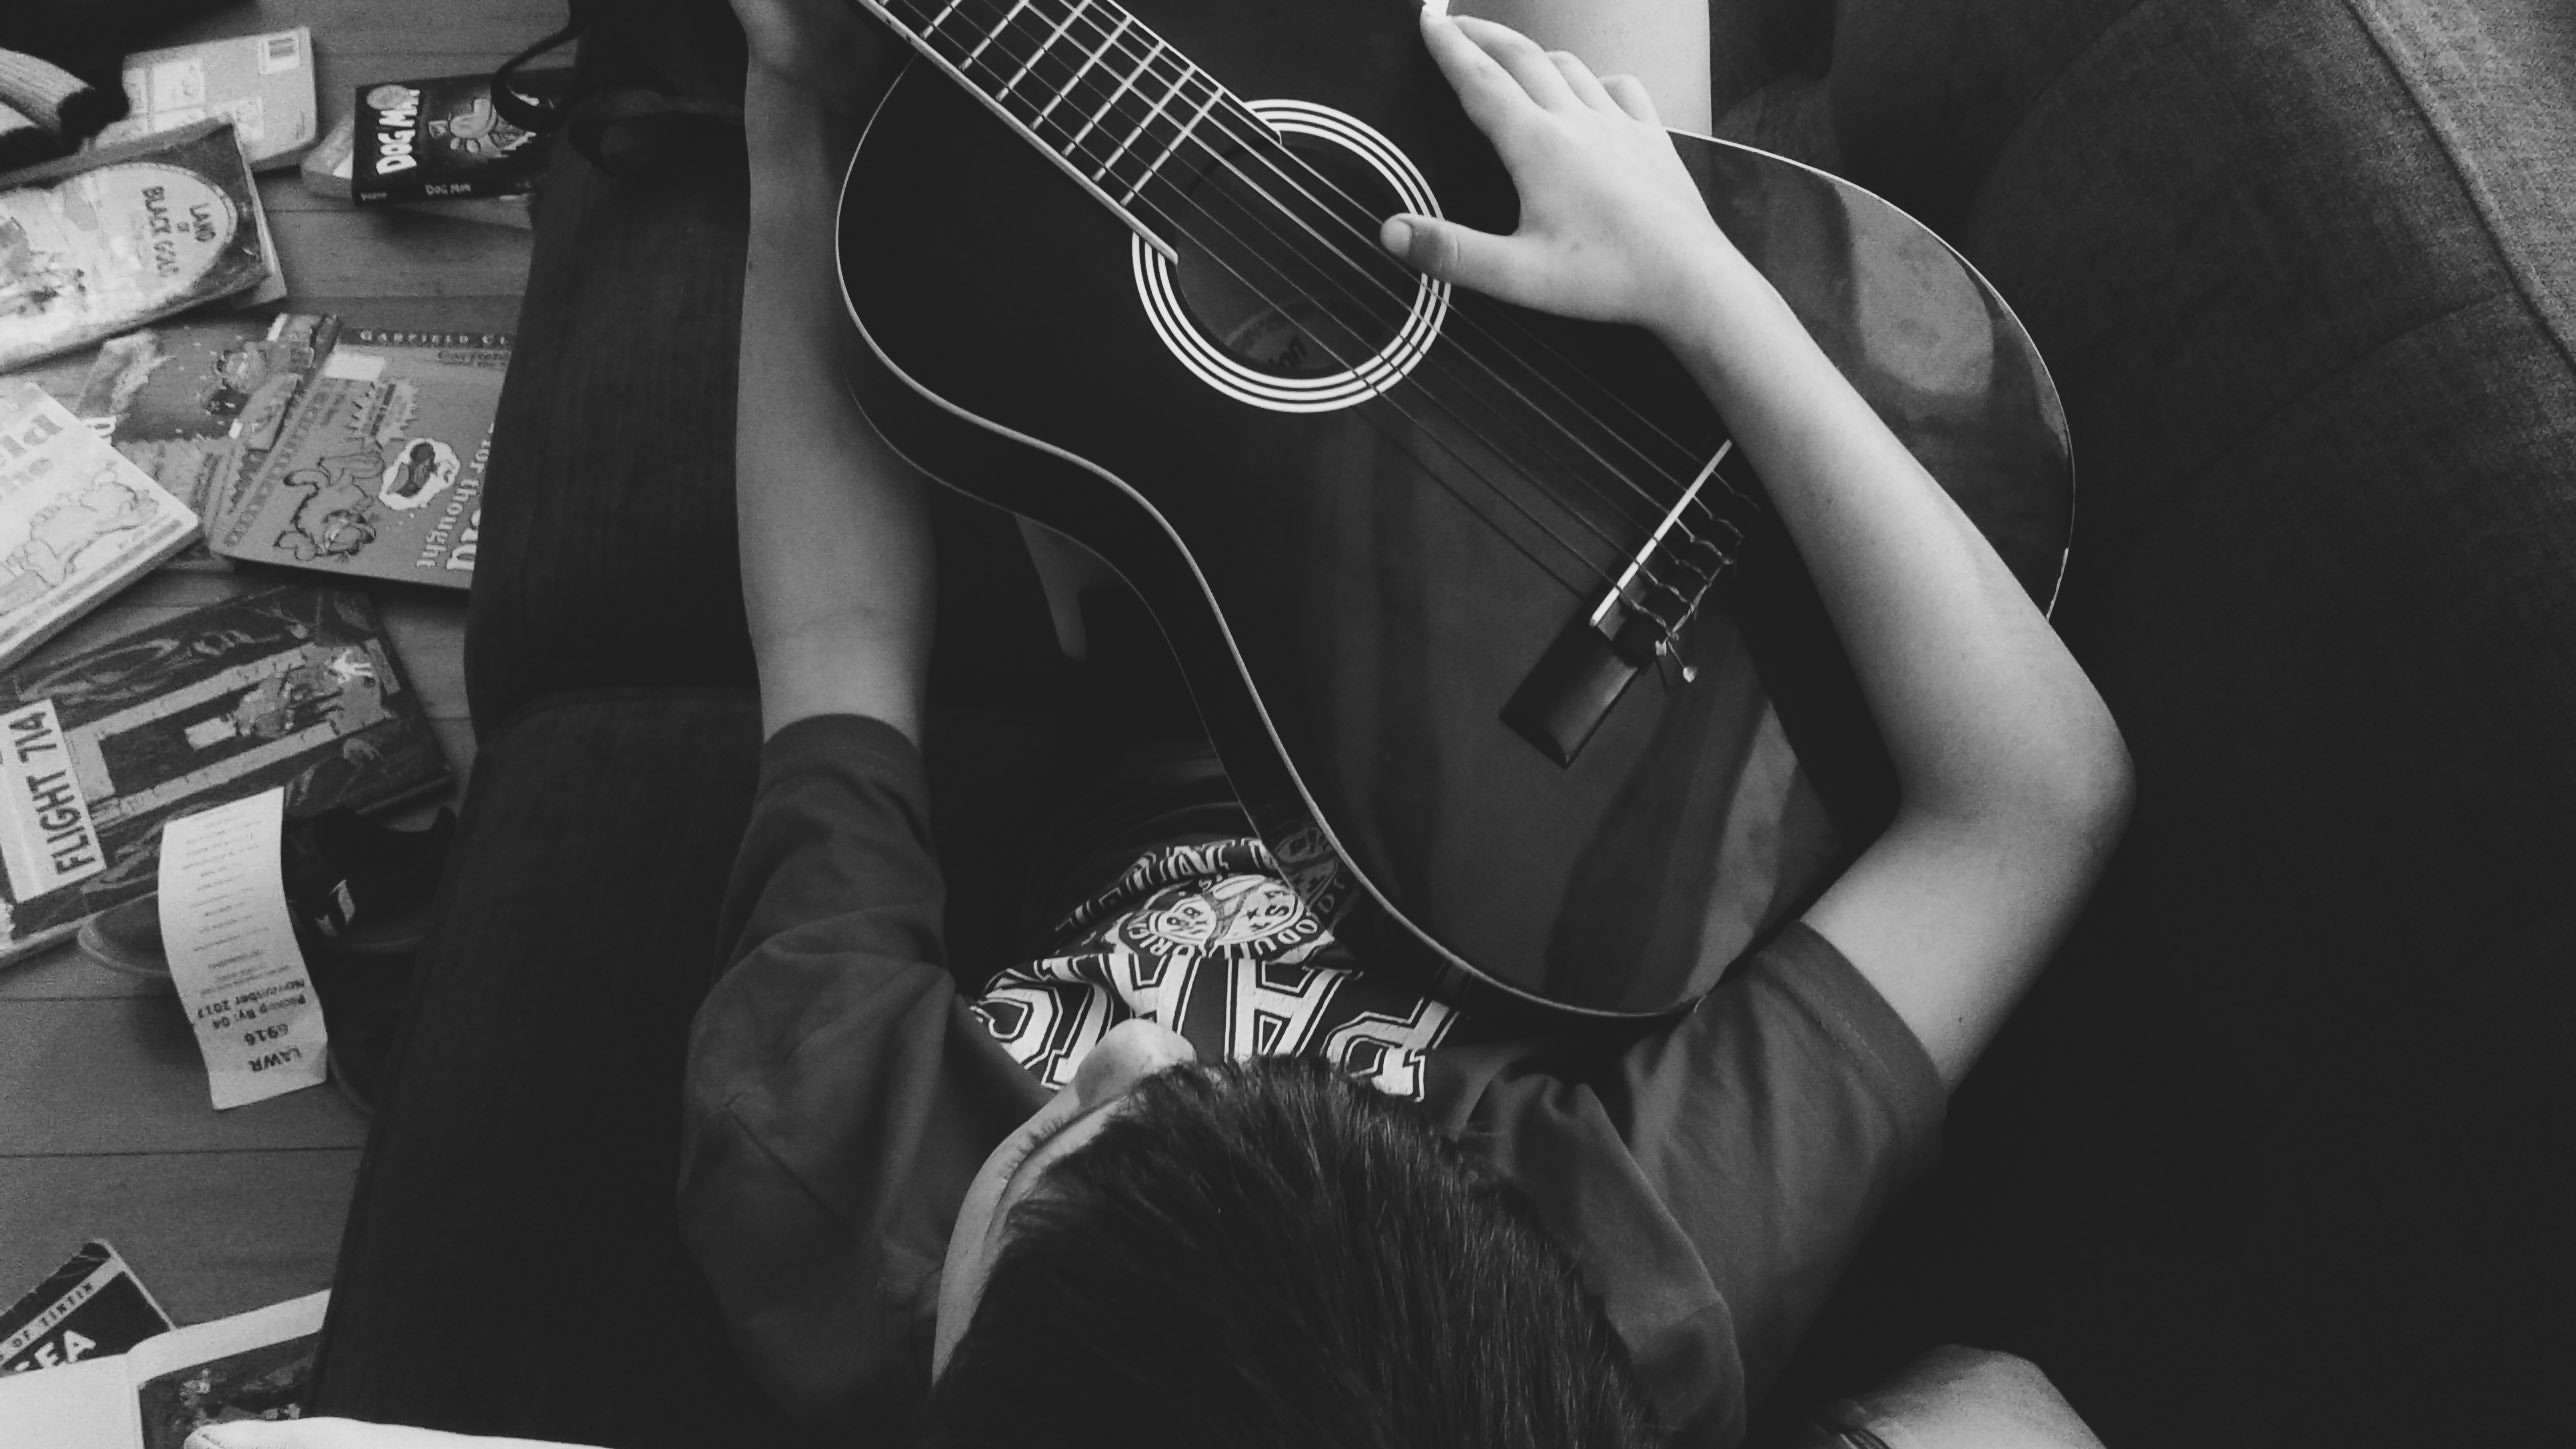 Grayscale Photography Of Person Playing Yamaha Acoustic